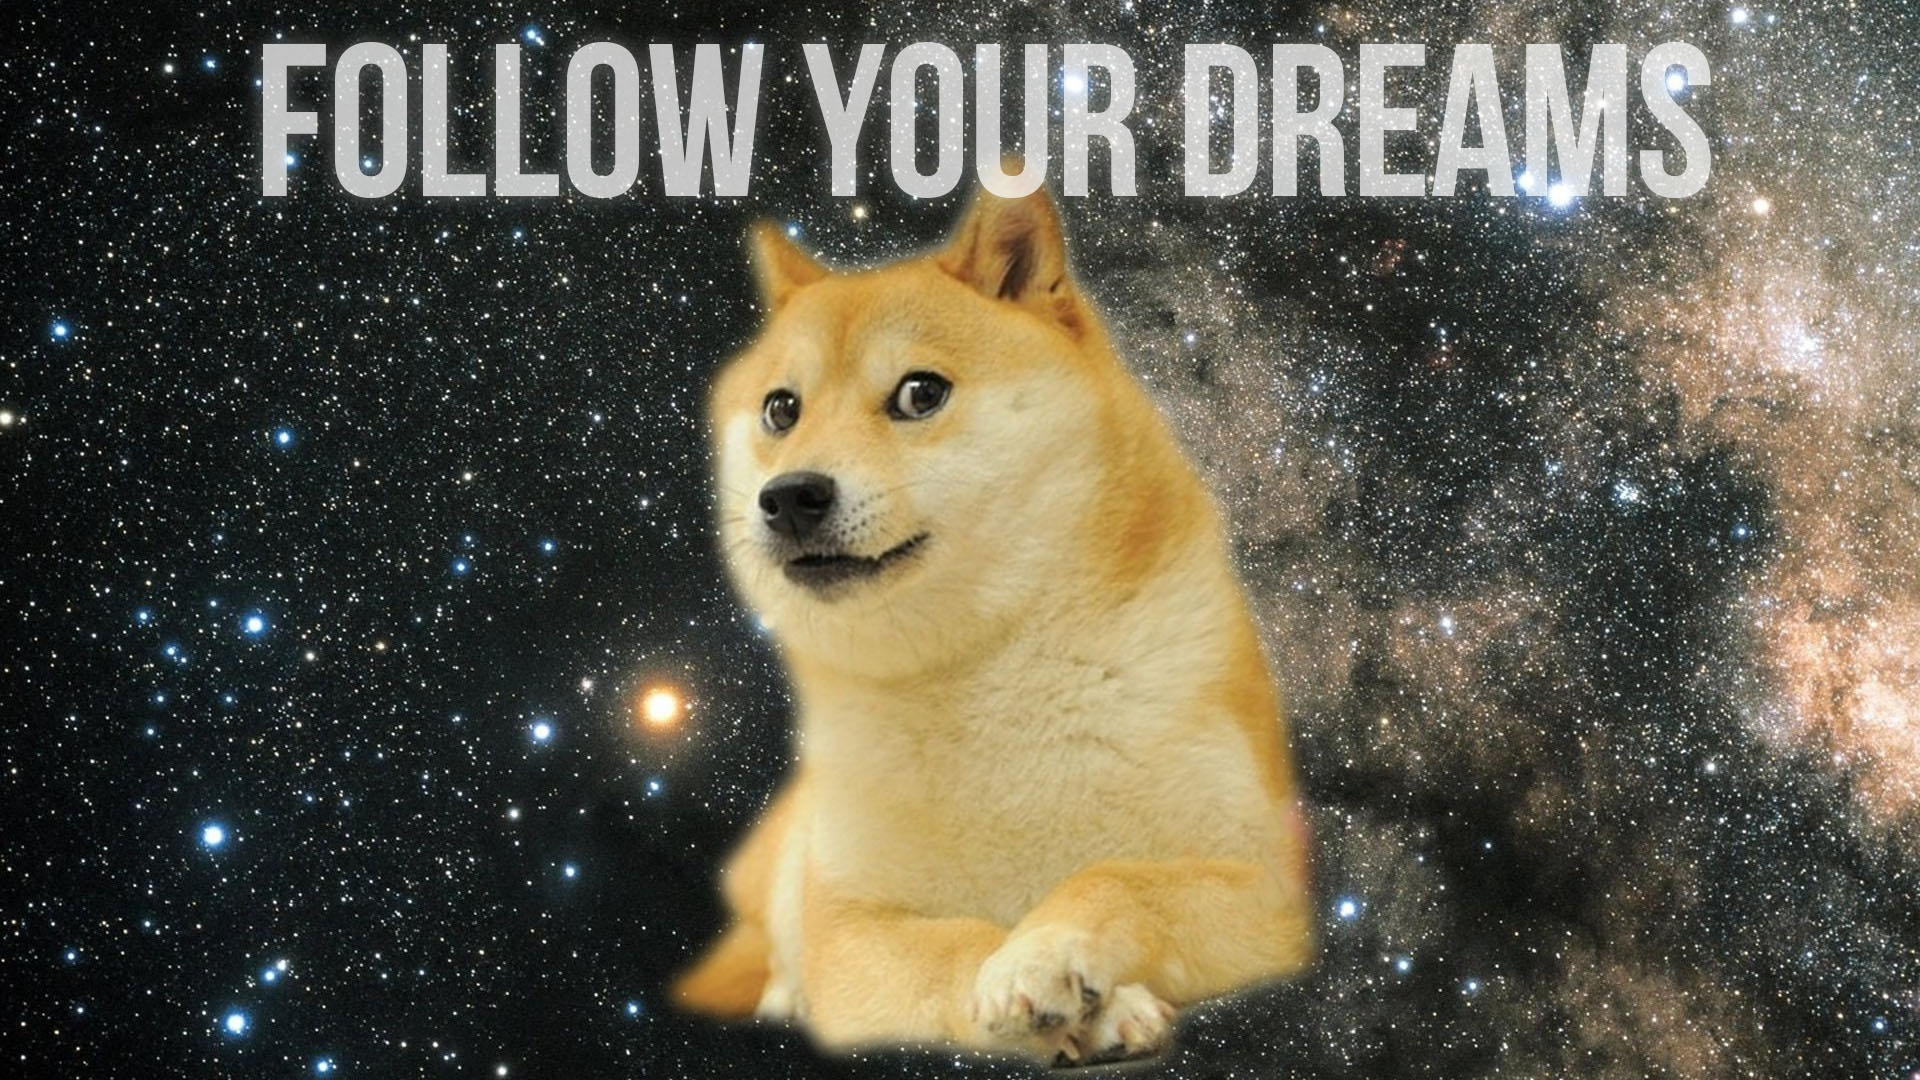 Doge in SPACE   Doge Wallpaper 1920x1080 14011 1920x1080